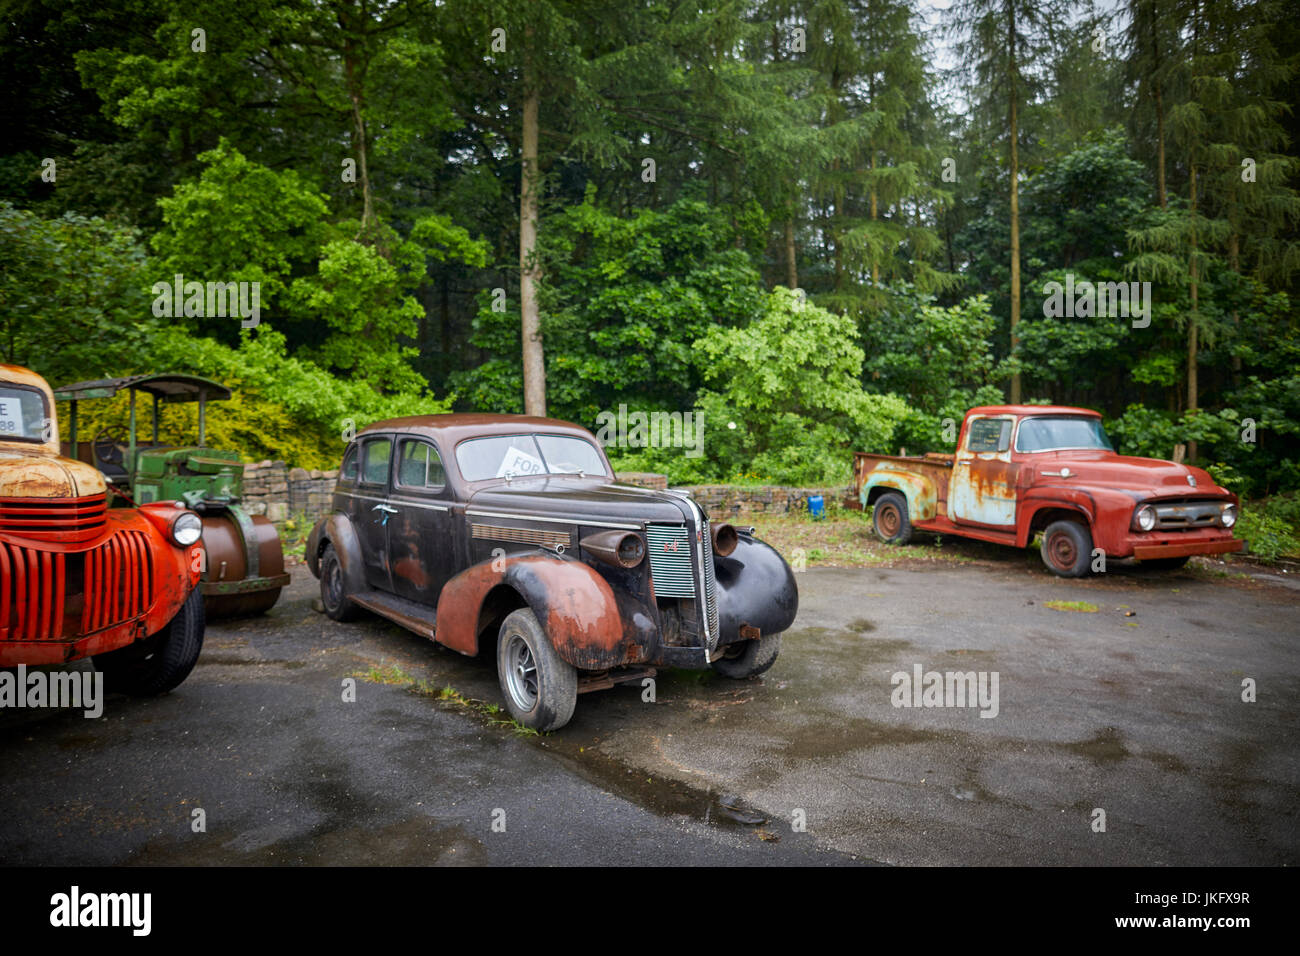 Best Classic Cars For Sale That Need Restoration Images - Classic ...